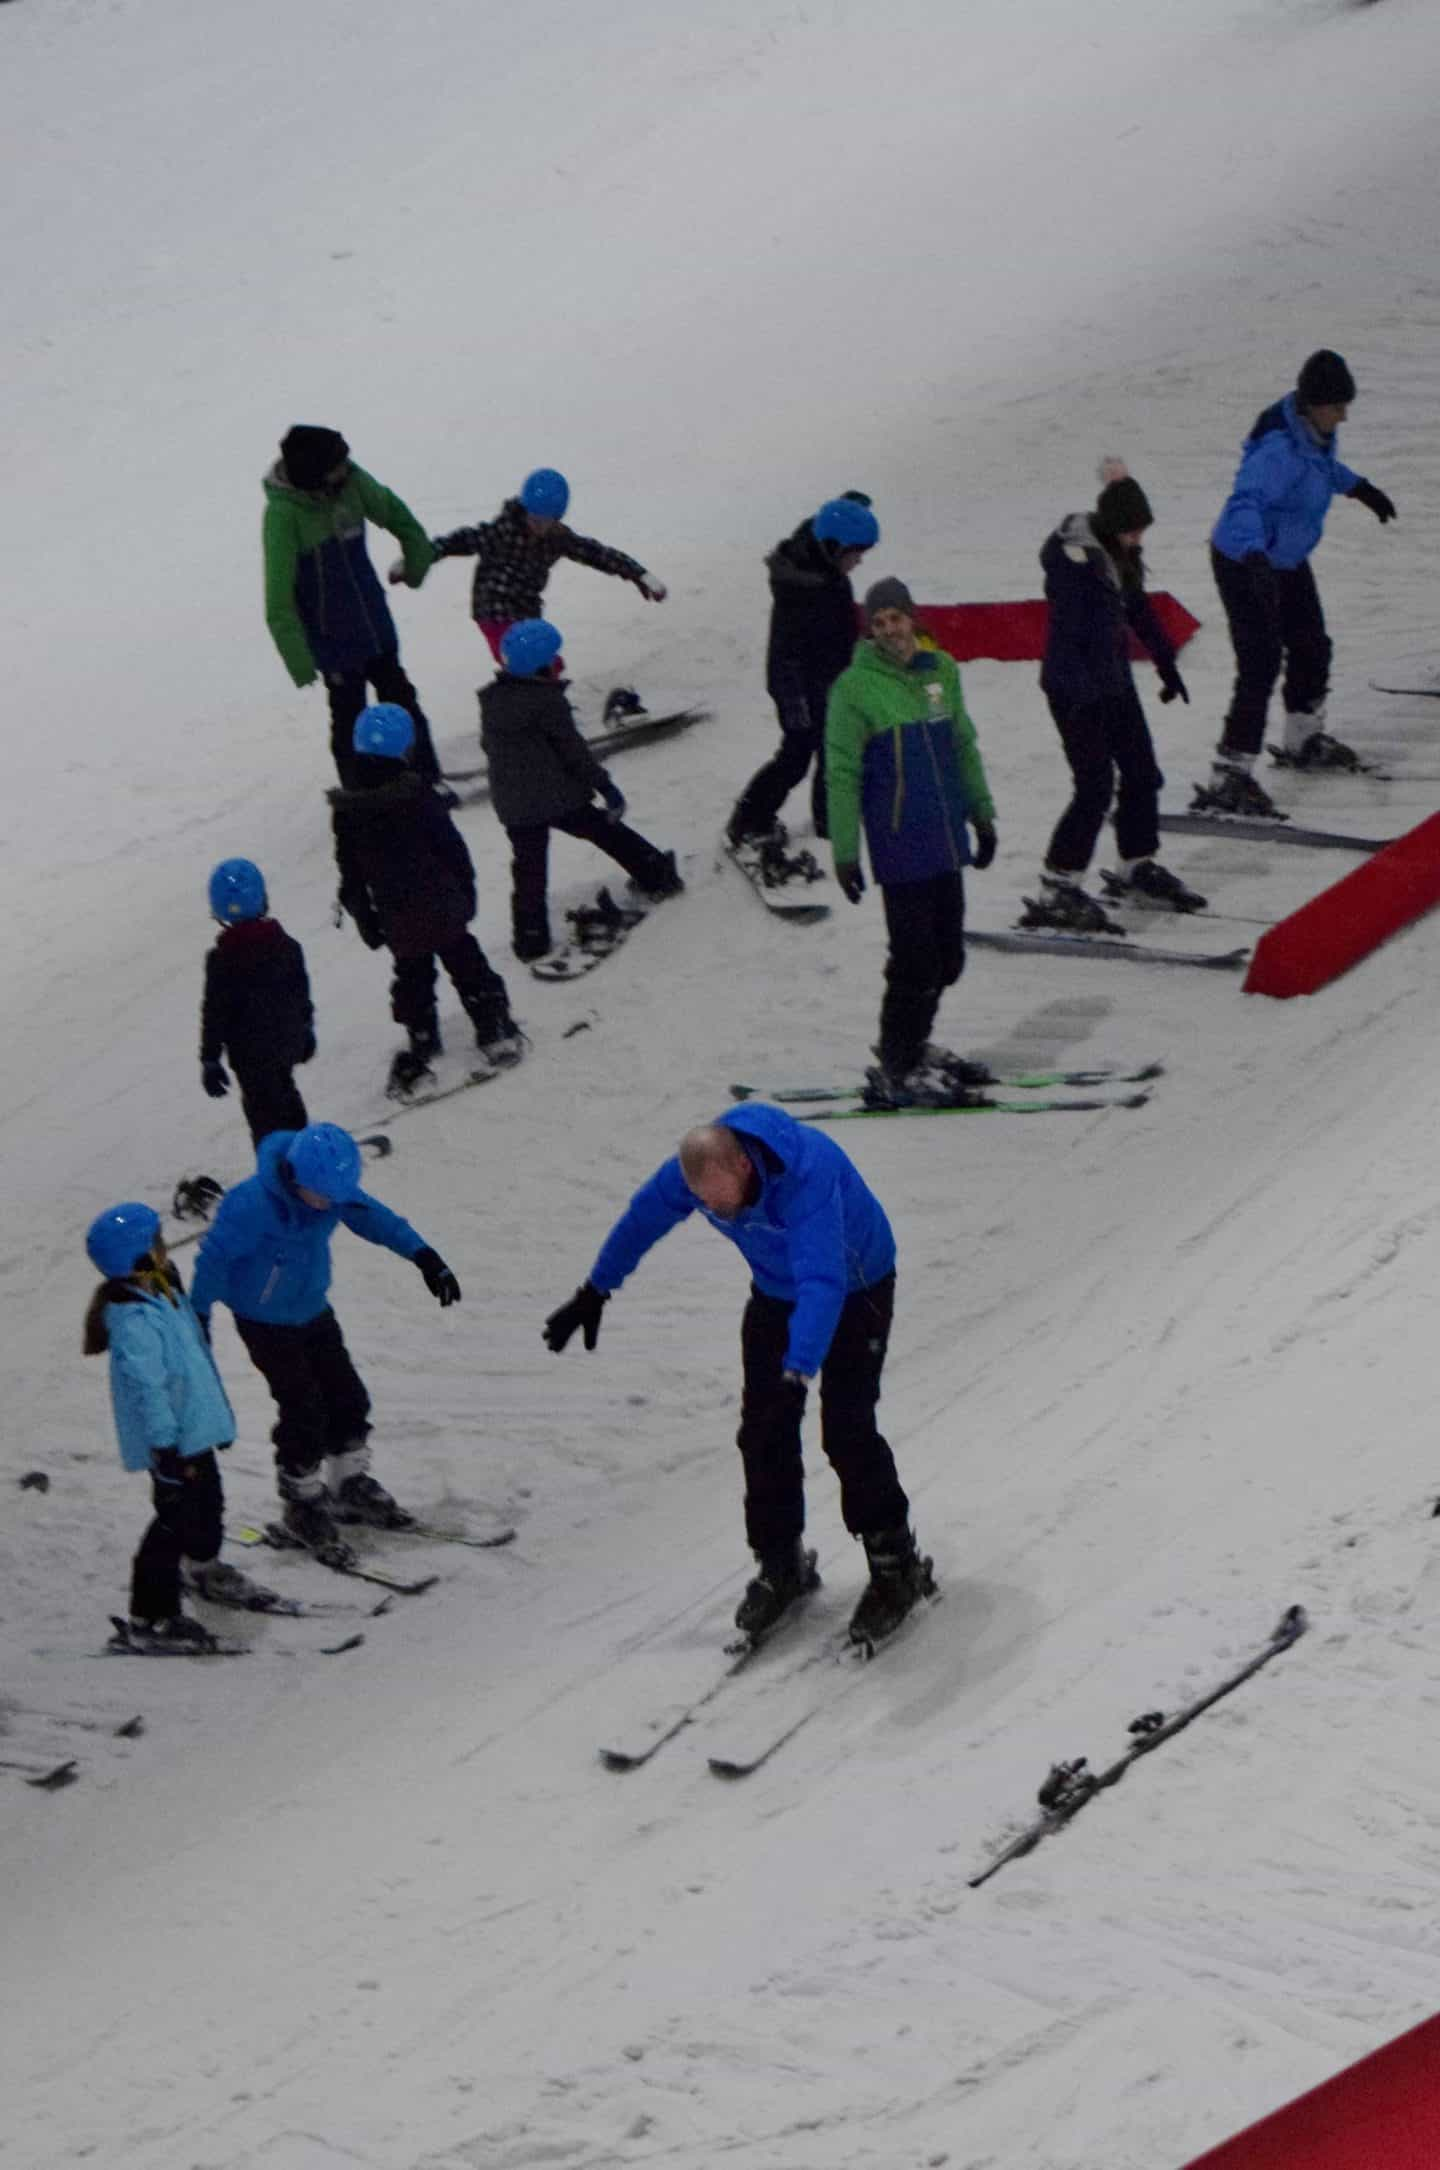 ski lessons at Chill Factore, Trafford